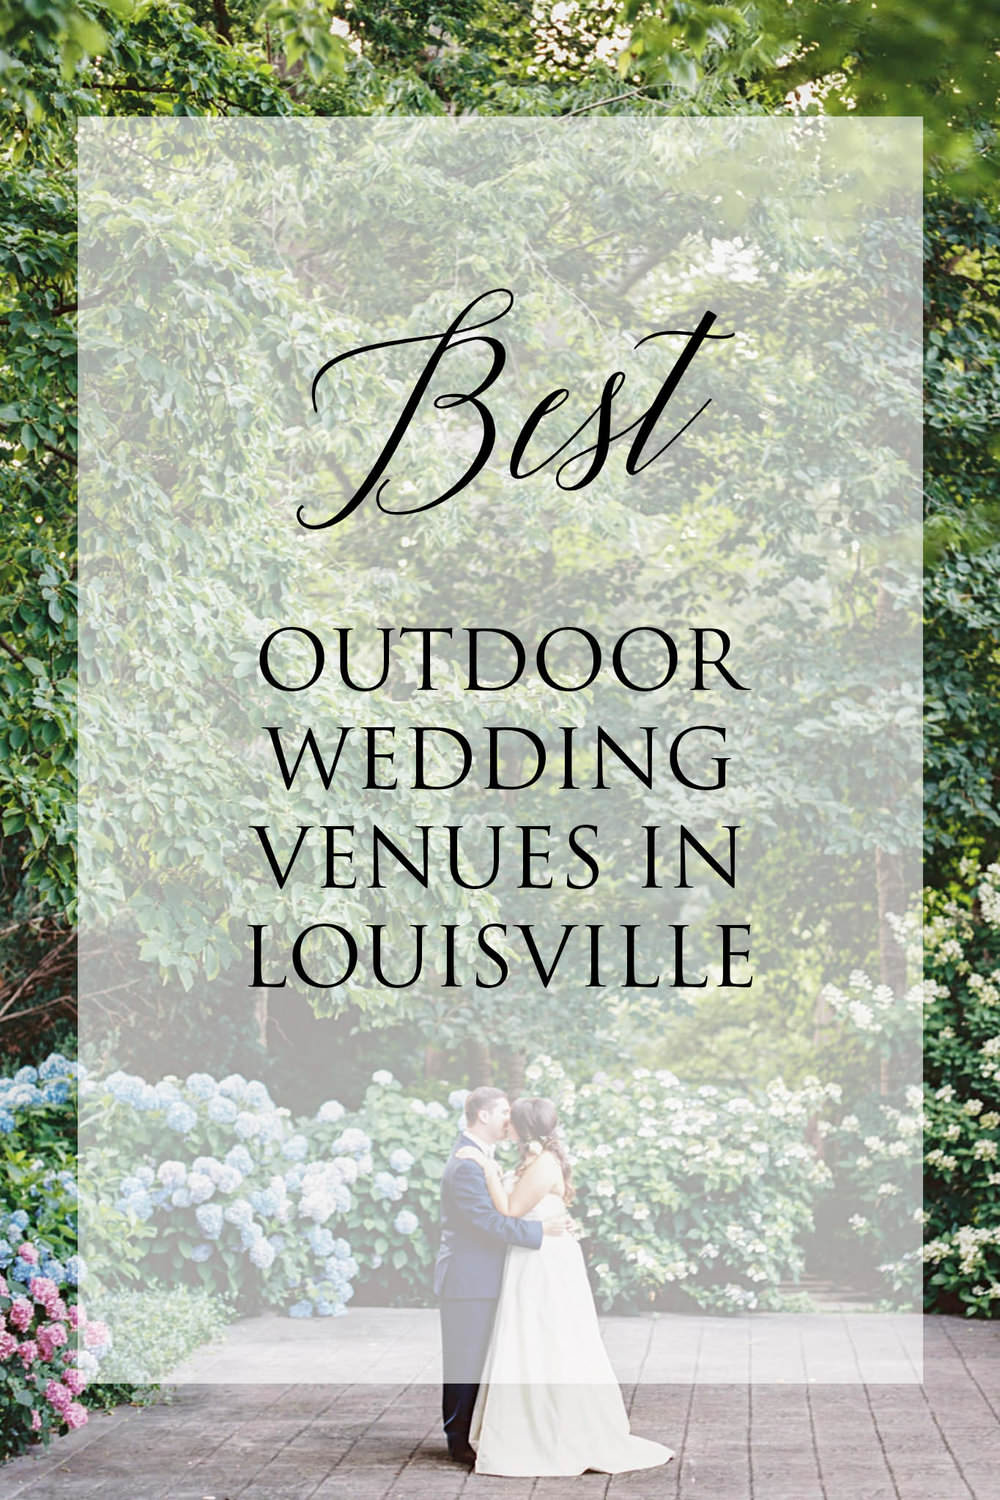 Louisville Wedding Venues Outdoors -  f you're in the early stages of planning an outdoor wedding, we highly recommend taking a look at some of the prettiest outdoor wedding venues in Louisville Ky...read more